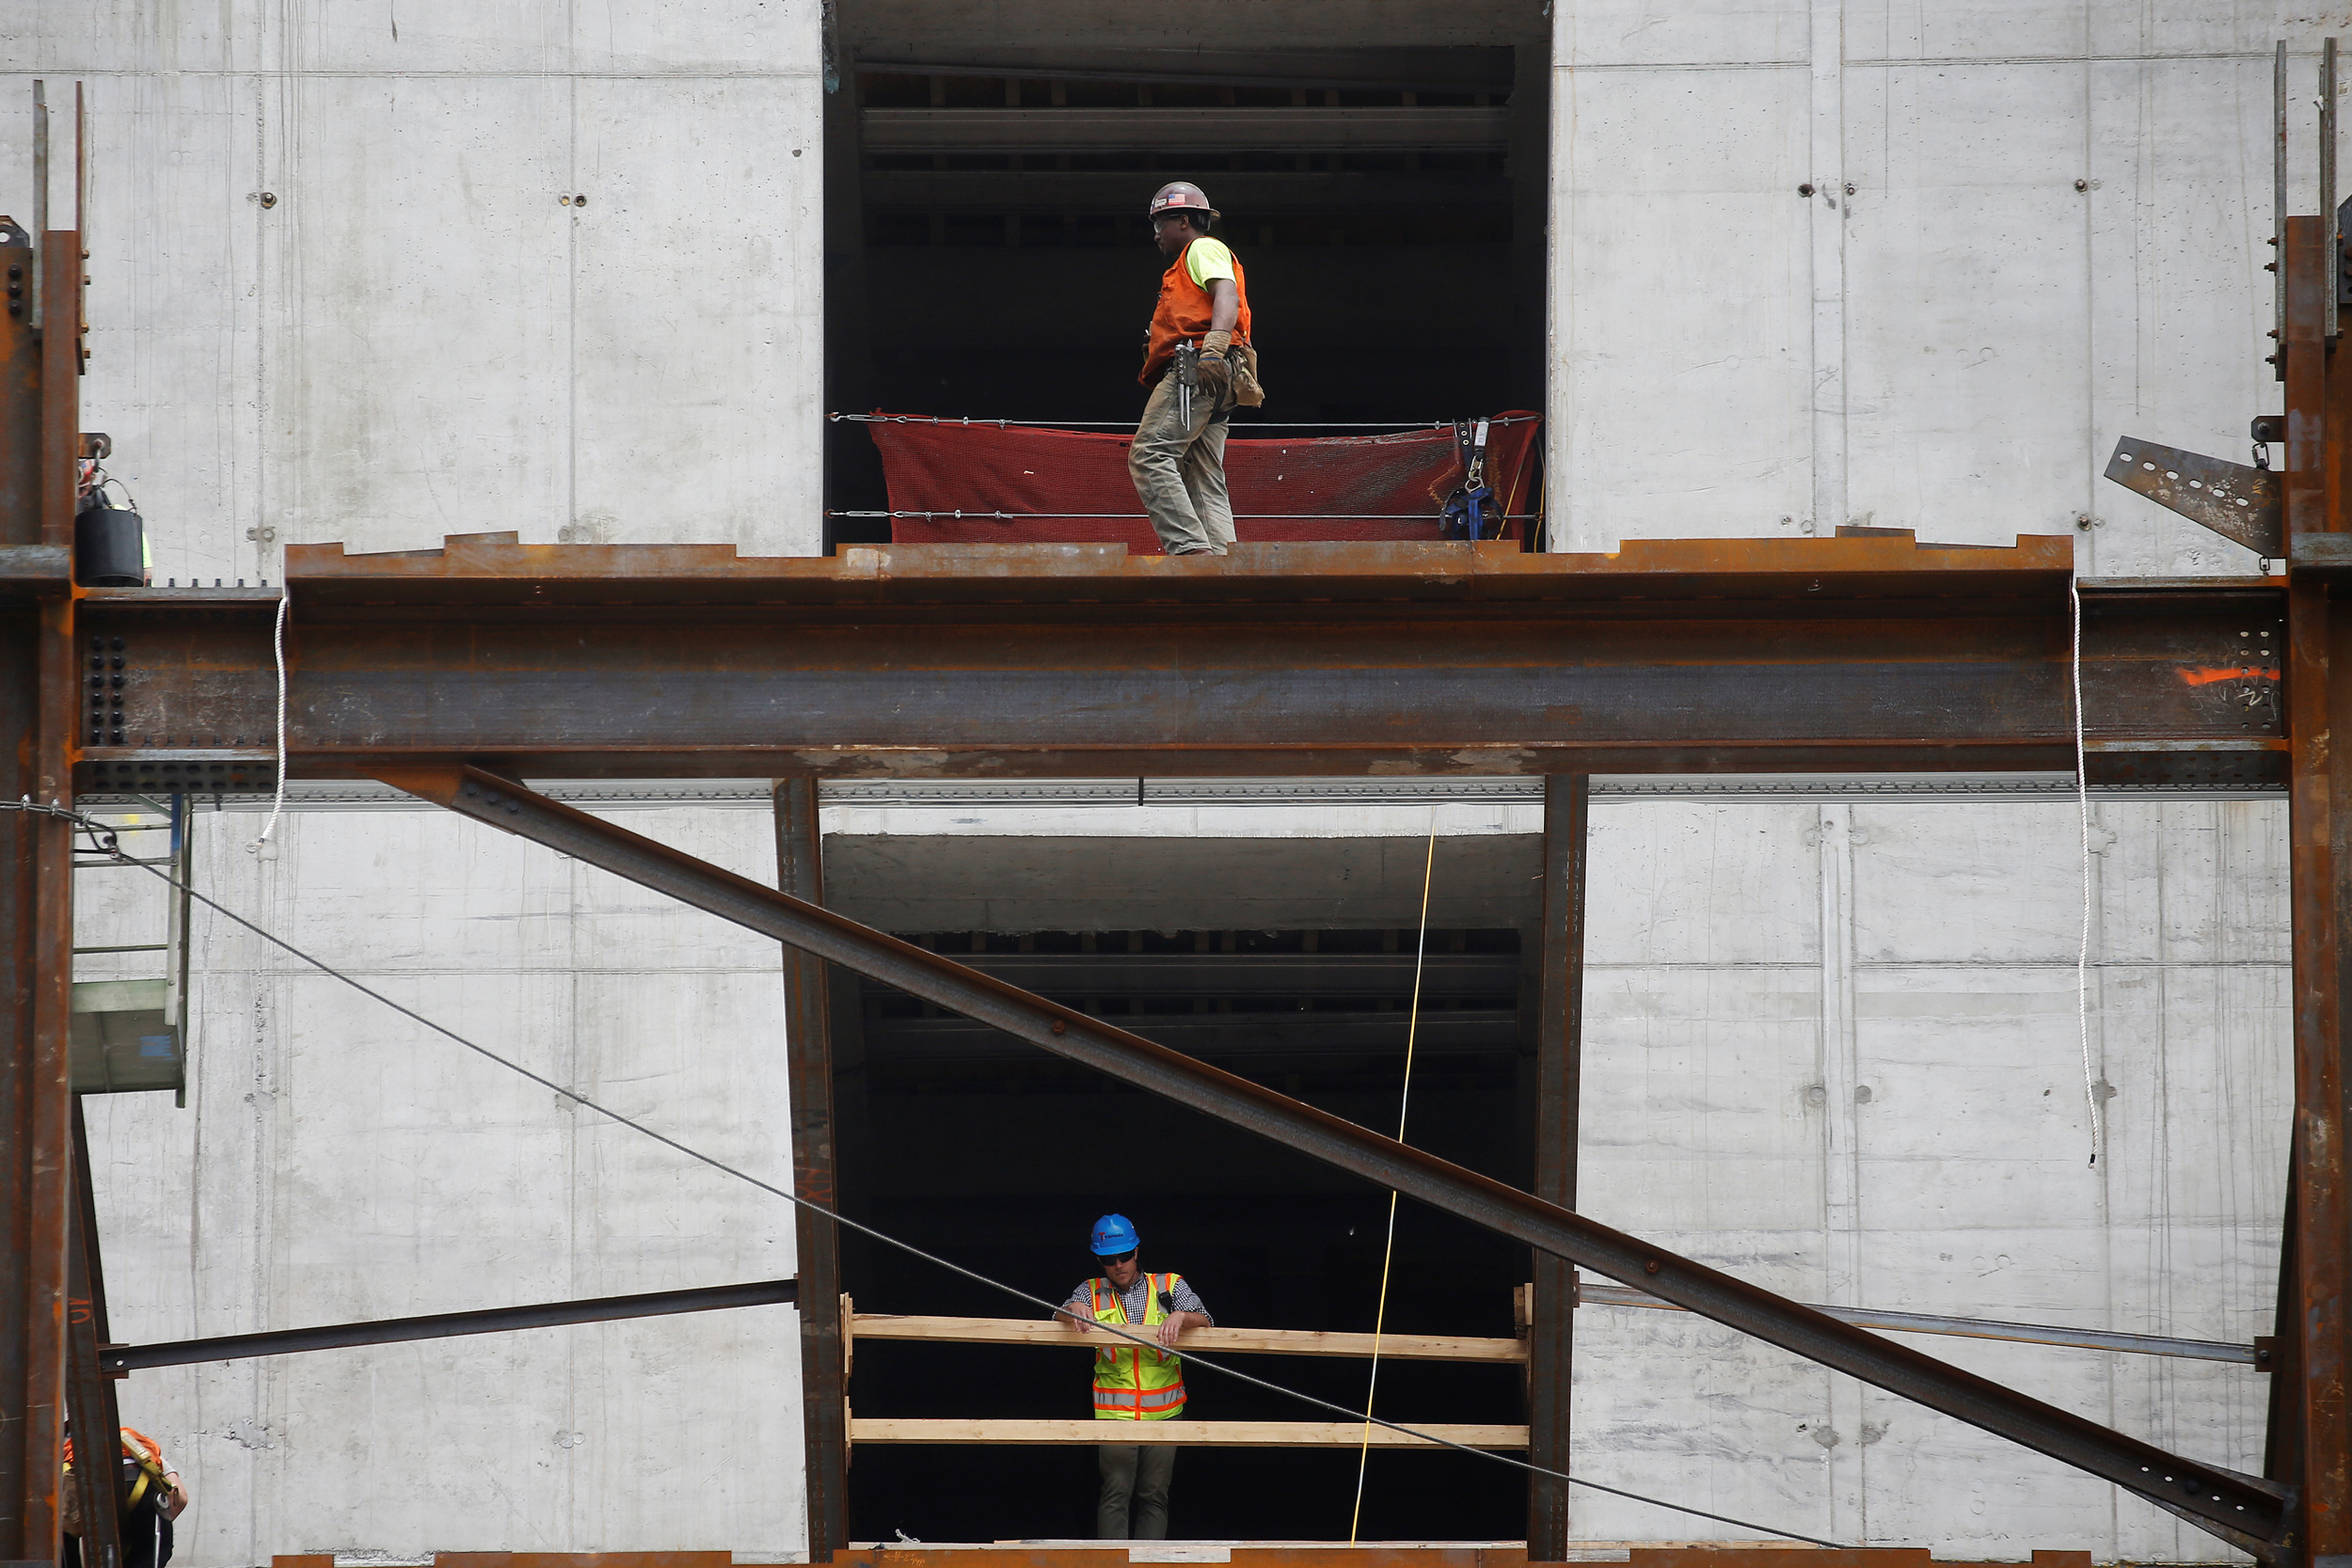 Number of OSHA workplace safety inspectors declines under Trump